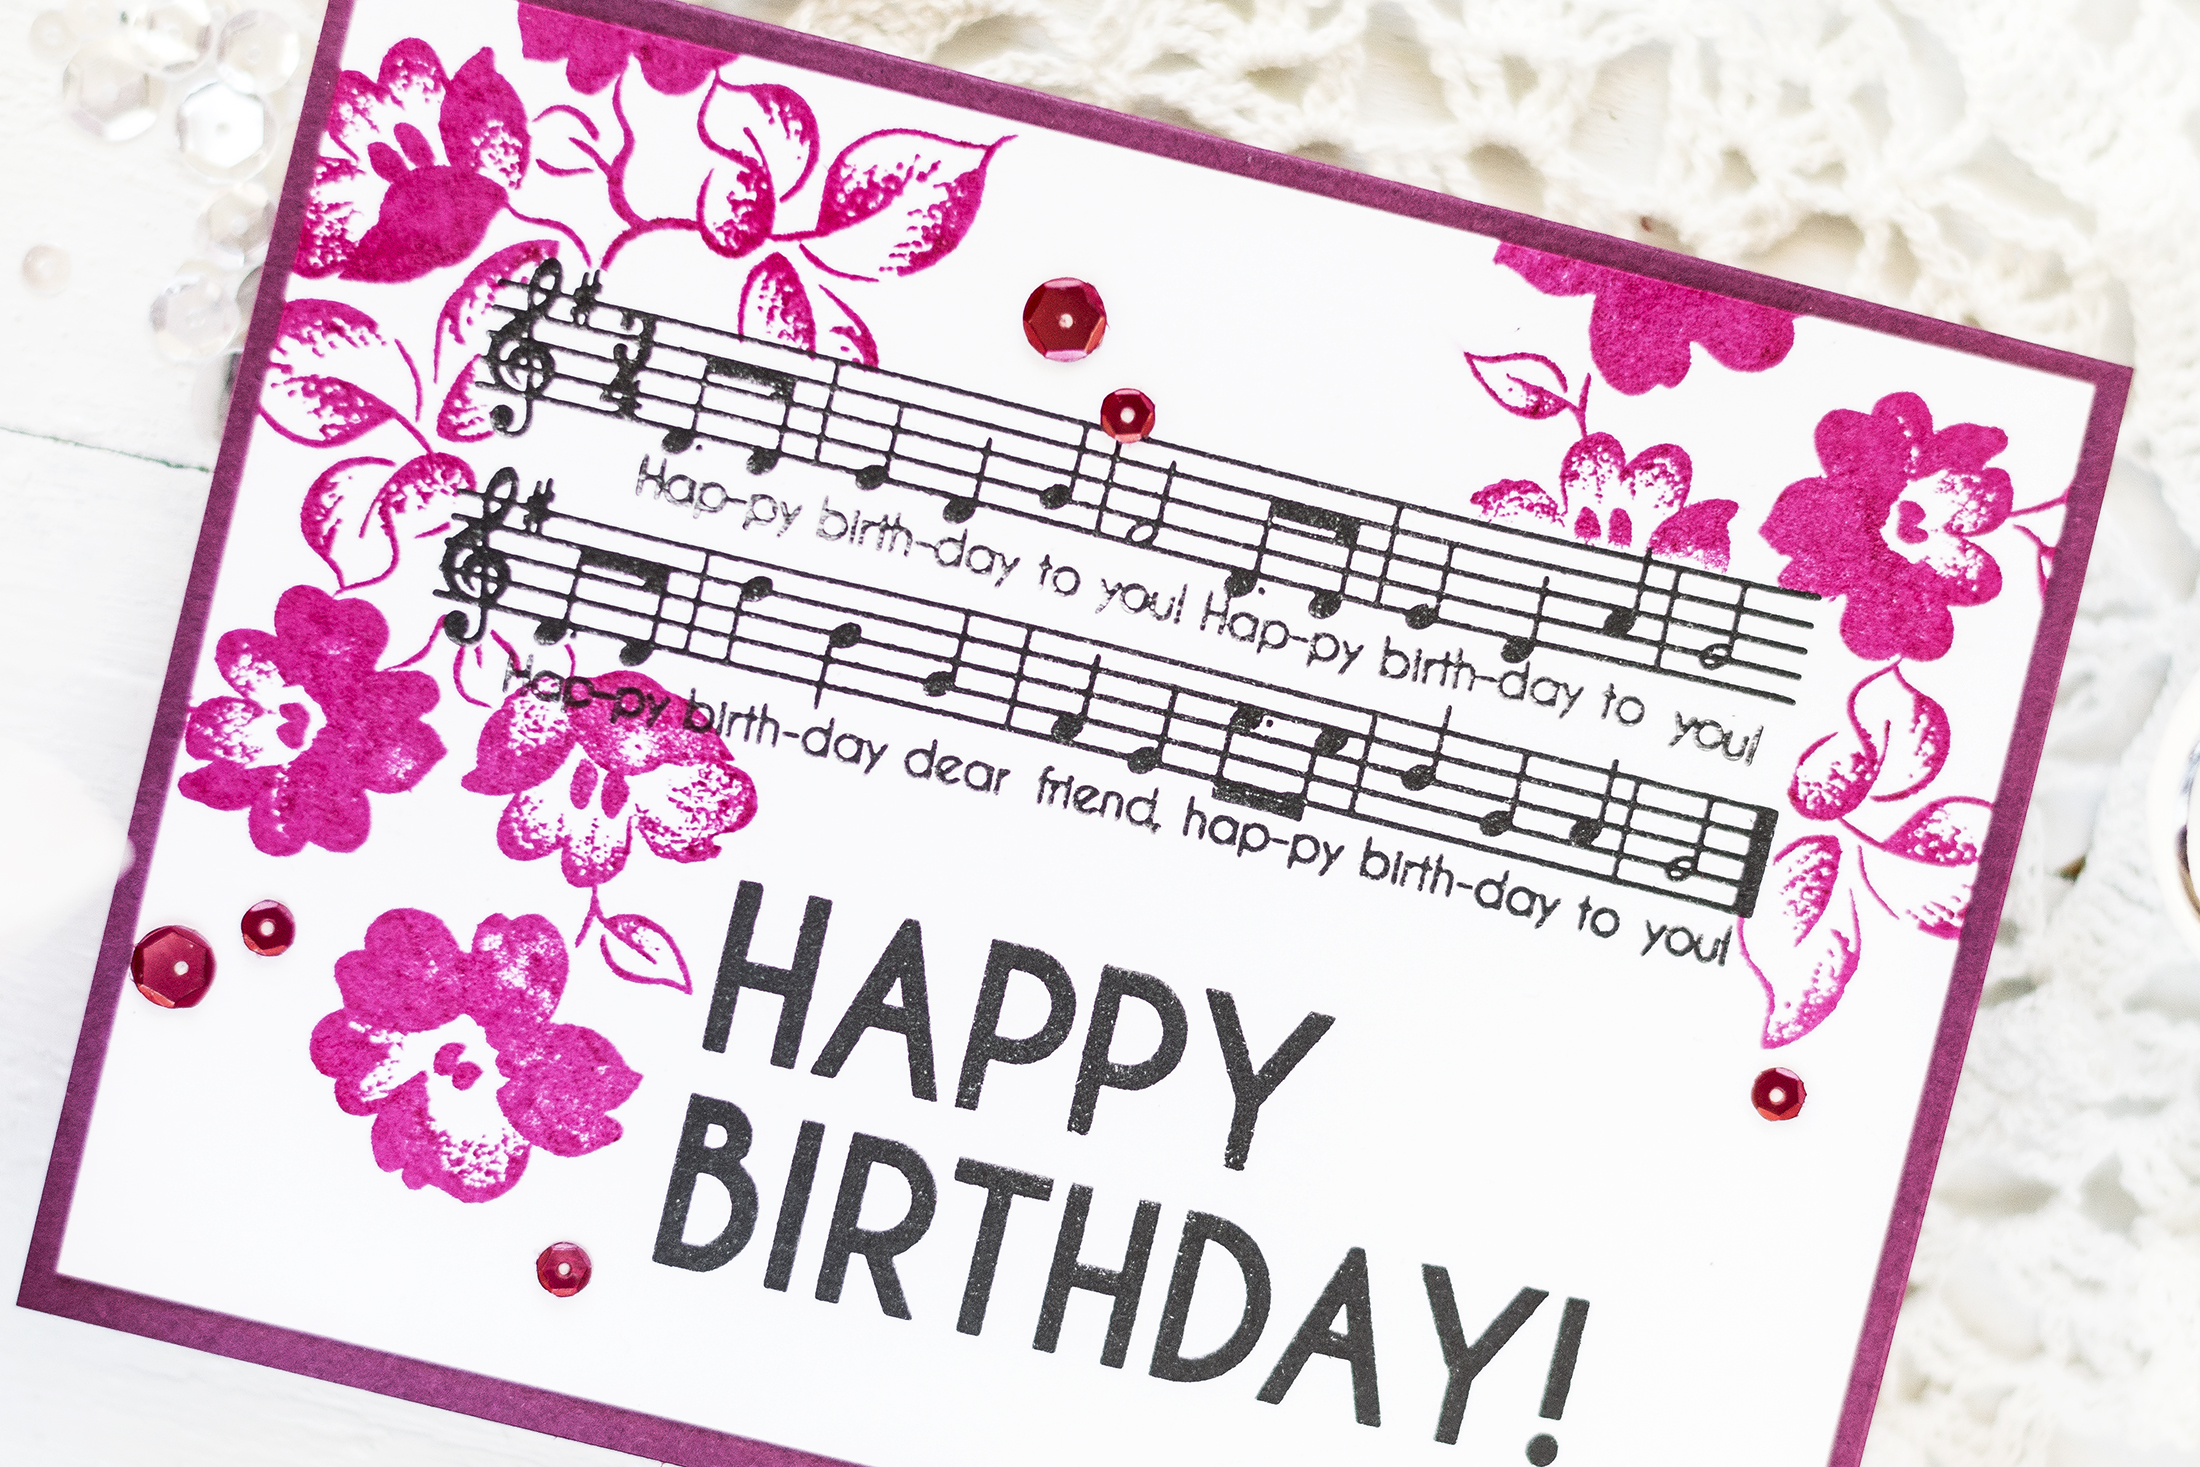 Floral Music Notes Birthday Card. Card by Svitlana Shayevich